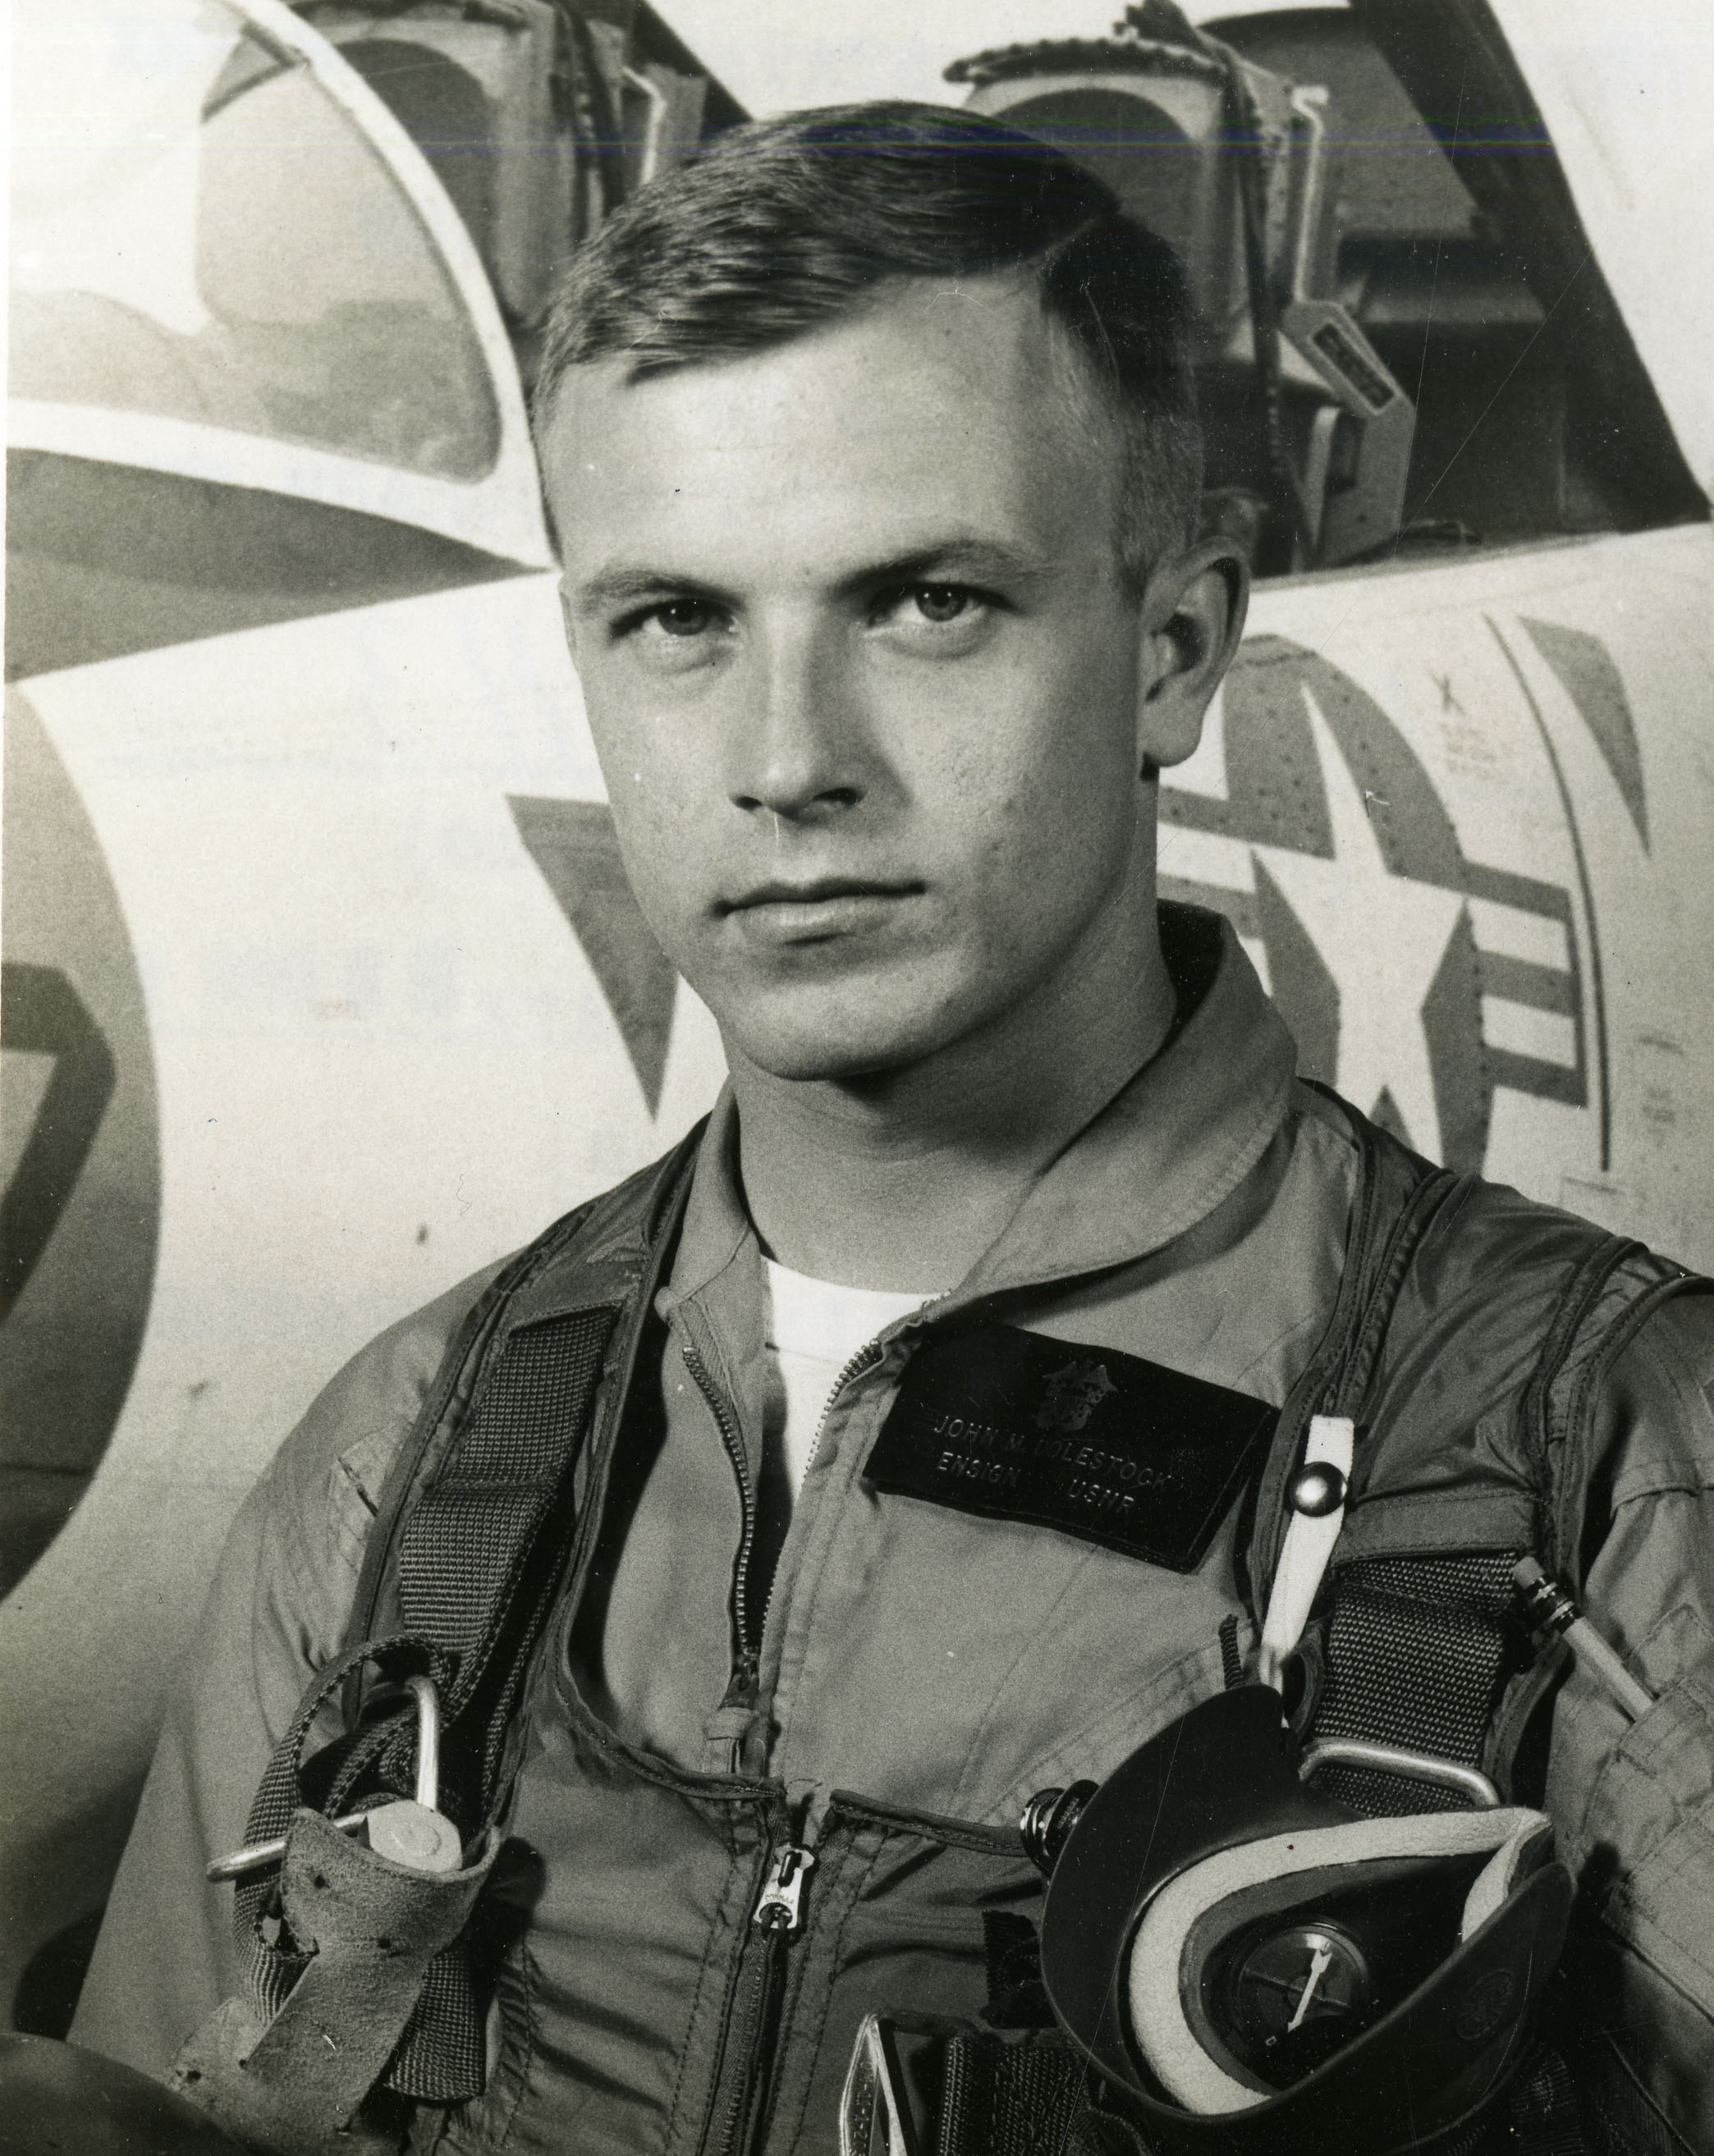 MS-222: Lt. John M. Colestock '65 Papers